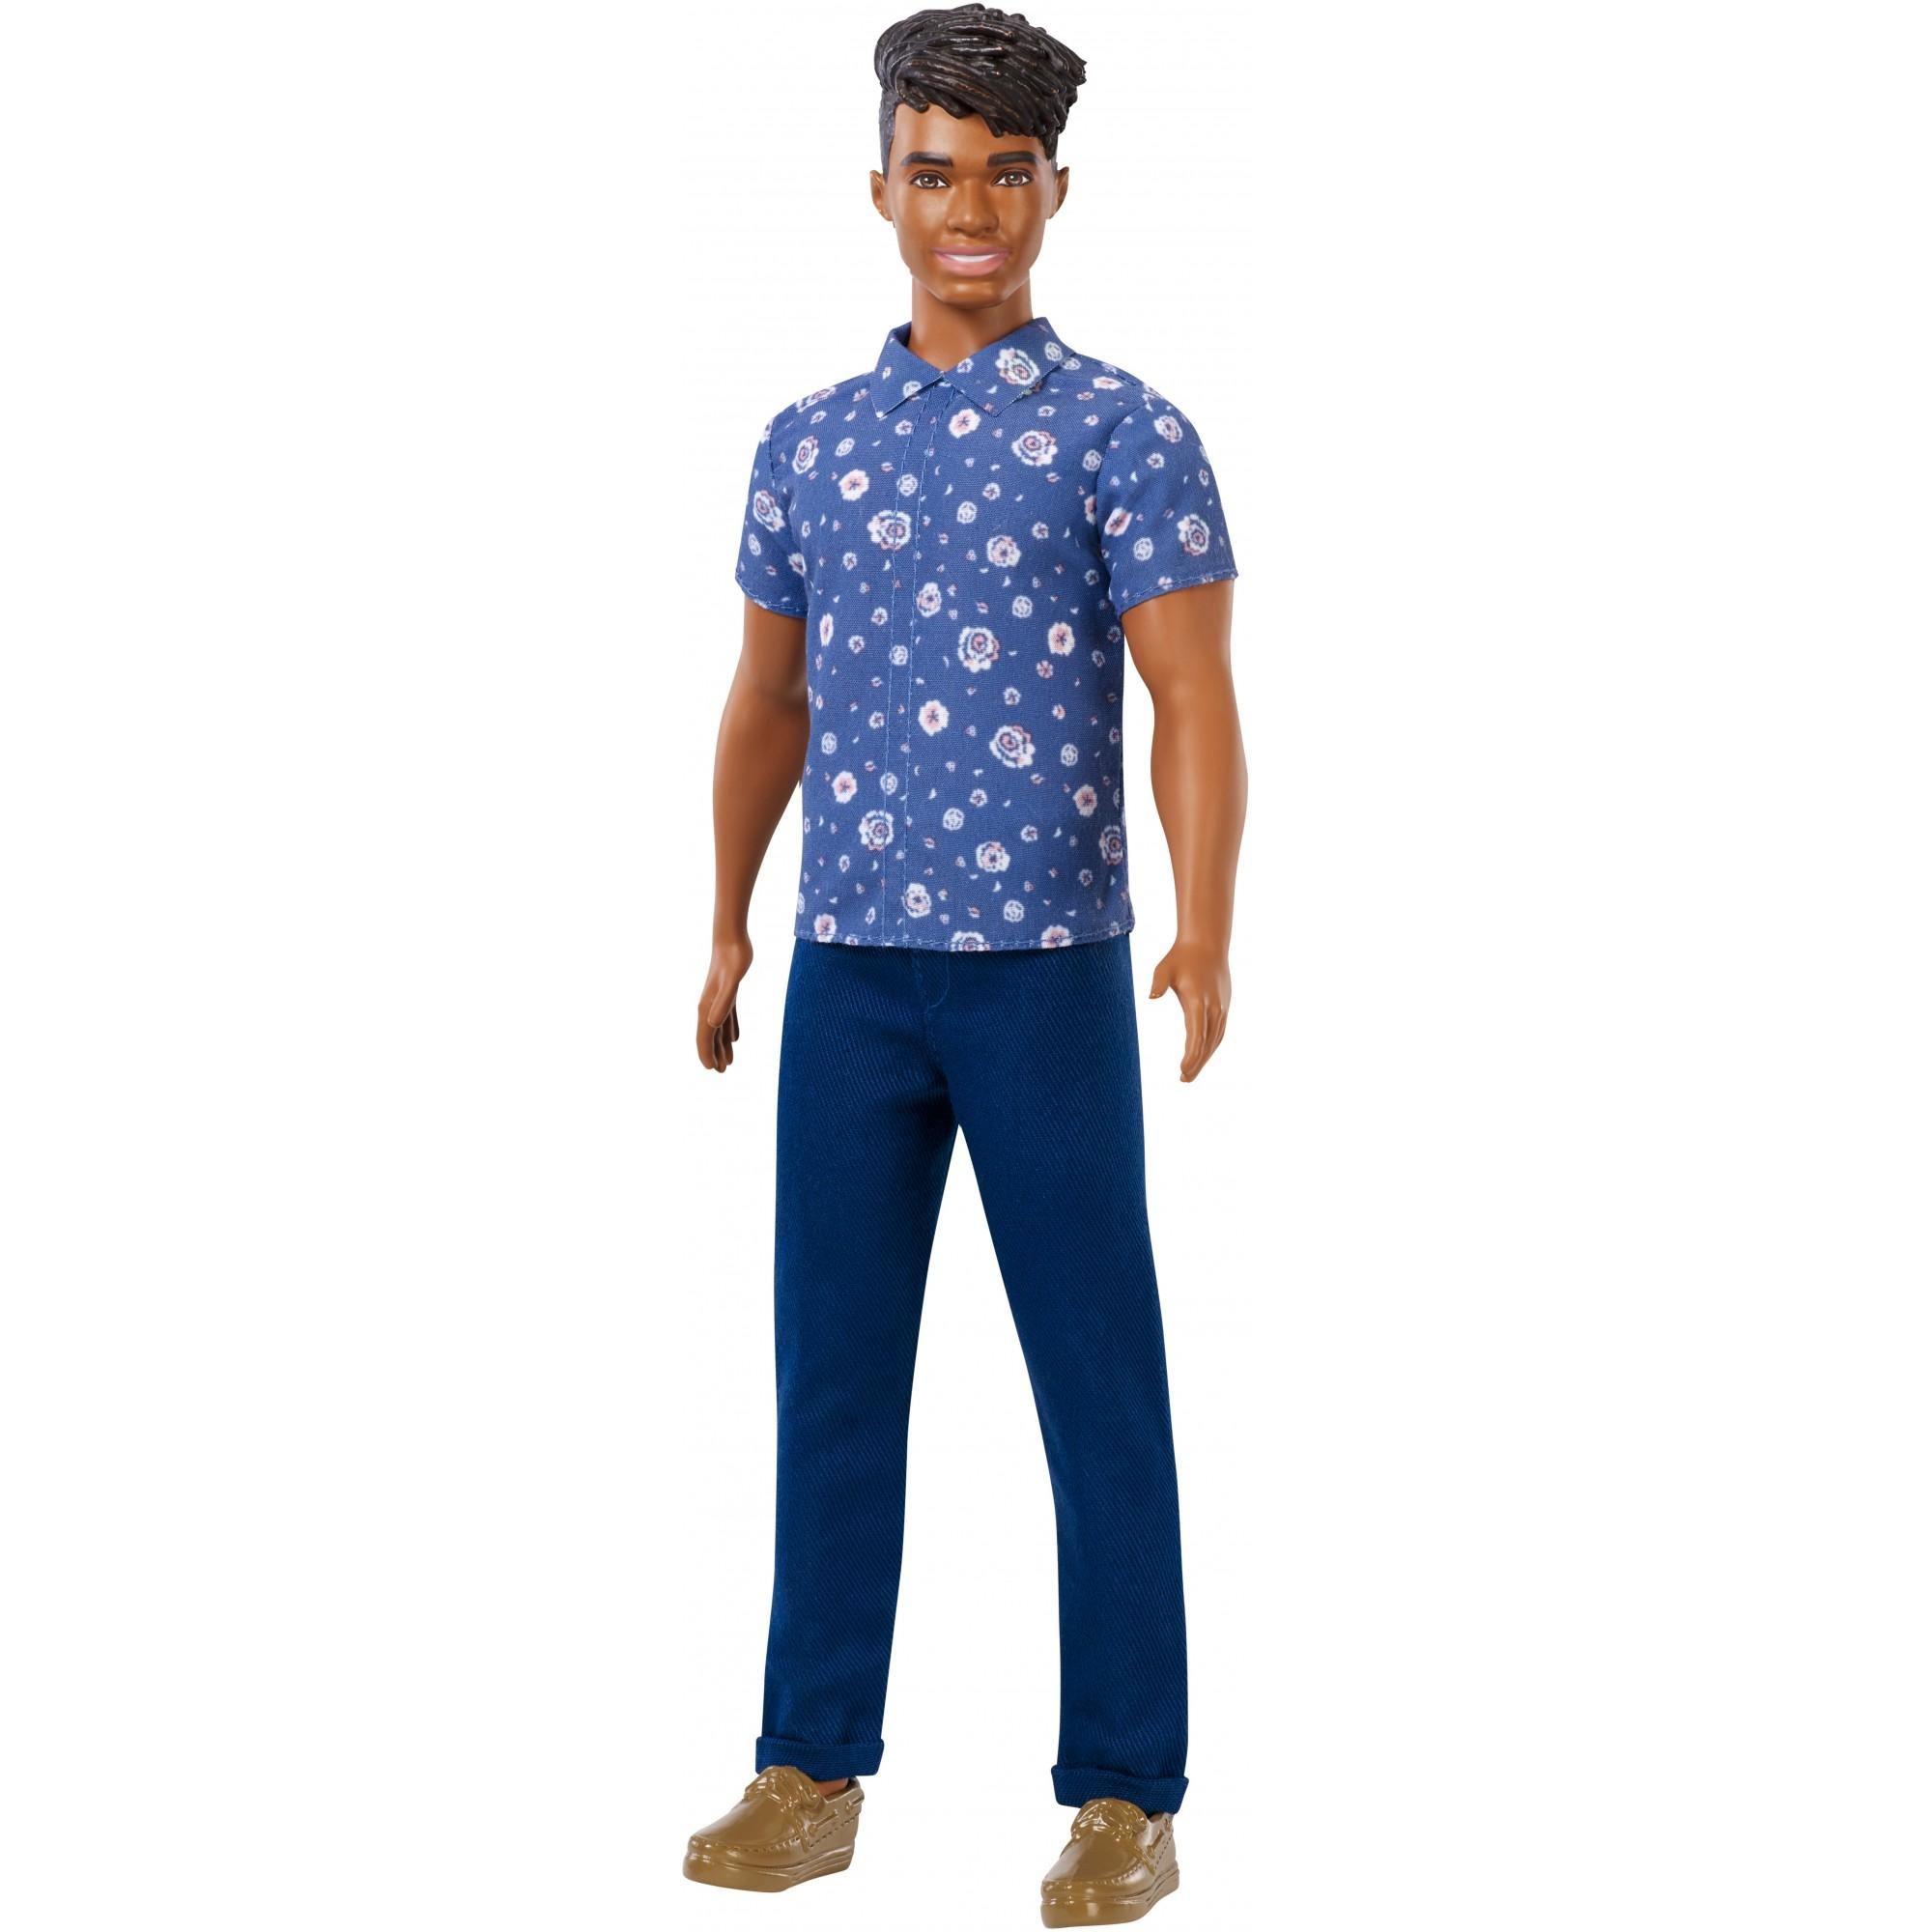 Barbie Ken Fashionistas Doll, Broad Body Type Wearing Blue Floral Top